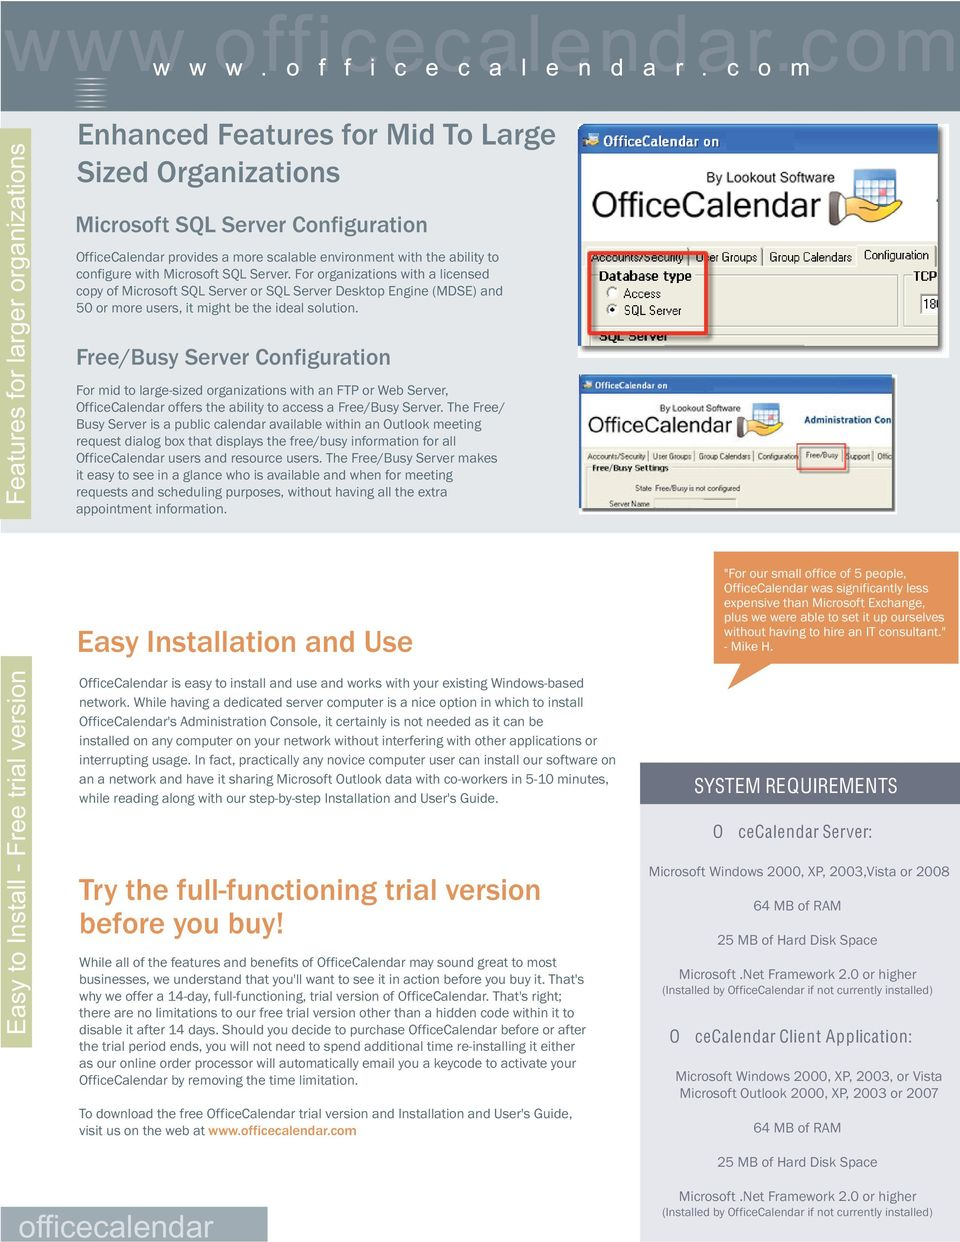 Free/Busy Server Configuration For mid to large-sized organizations with an FTP or Web Server, OfficeCalendar offers the ability to access a Free/Busy Server.